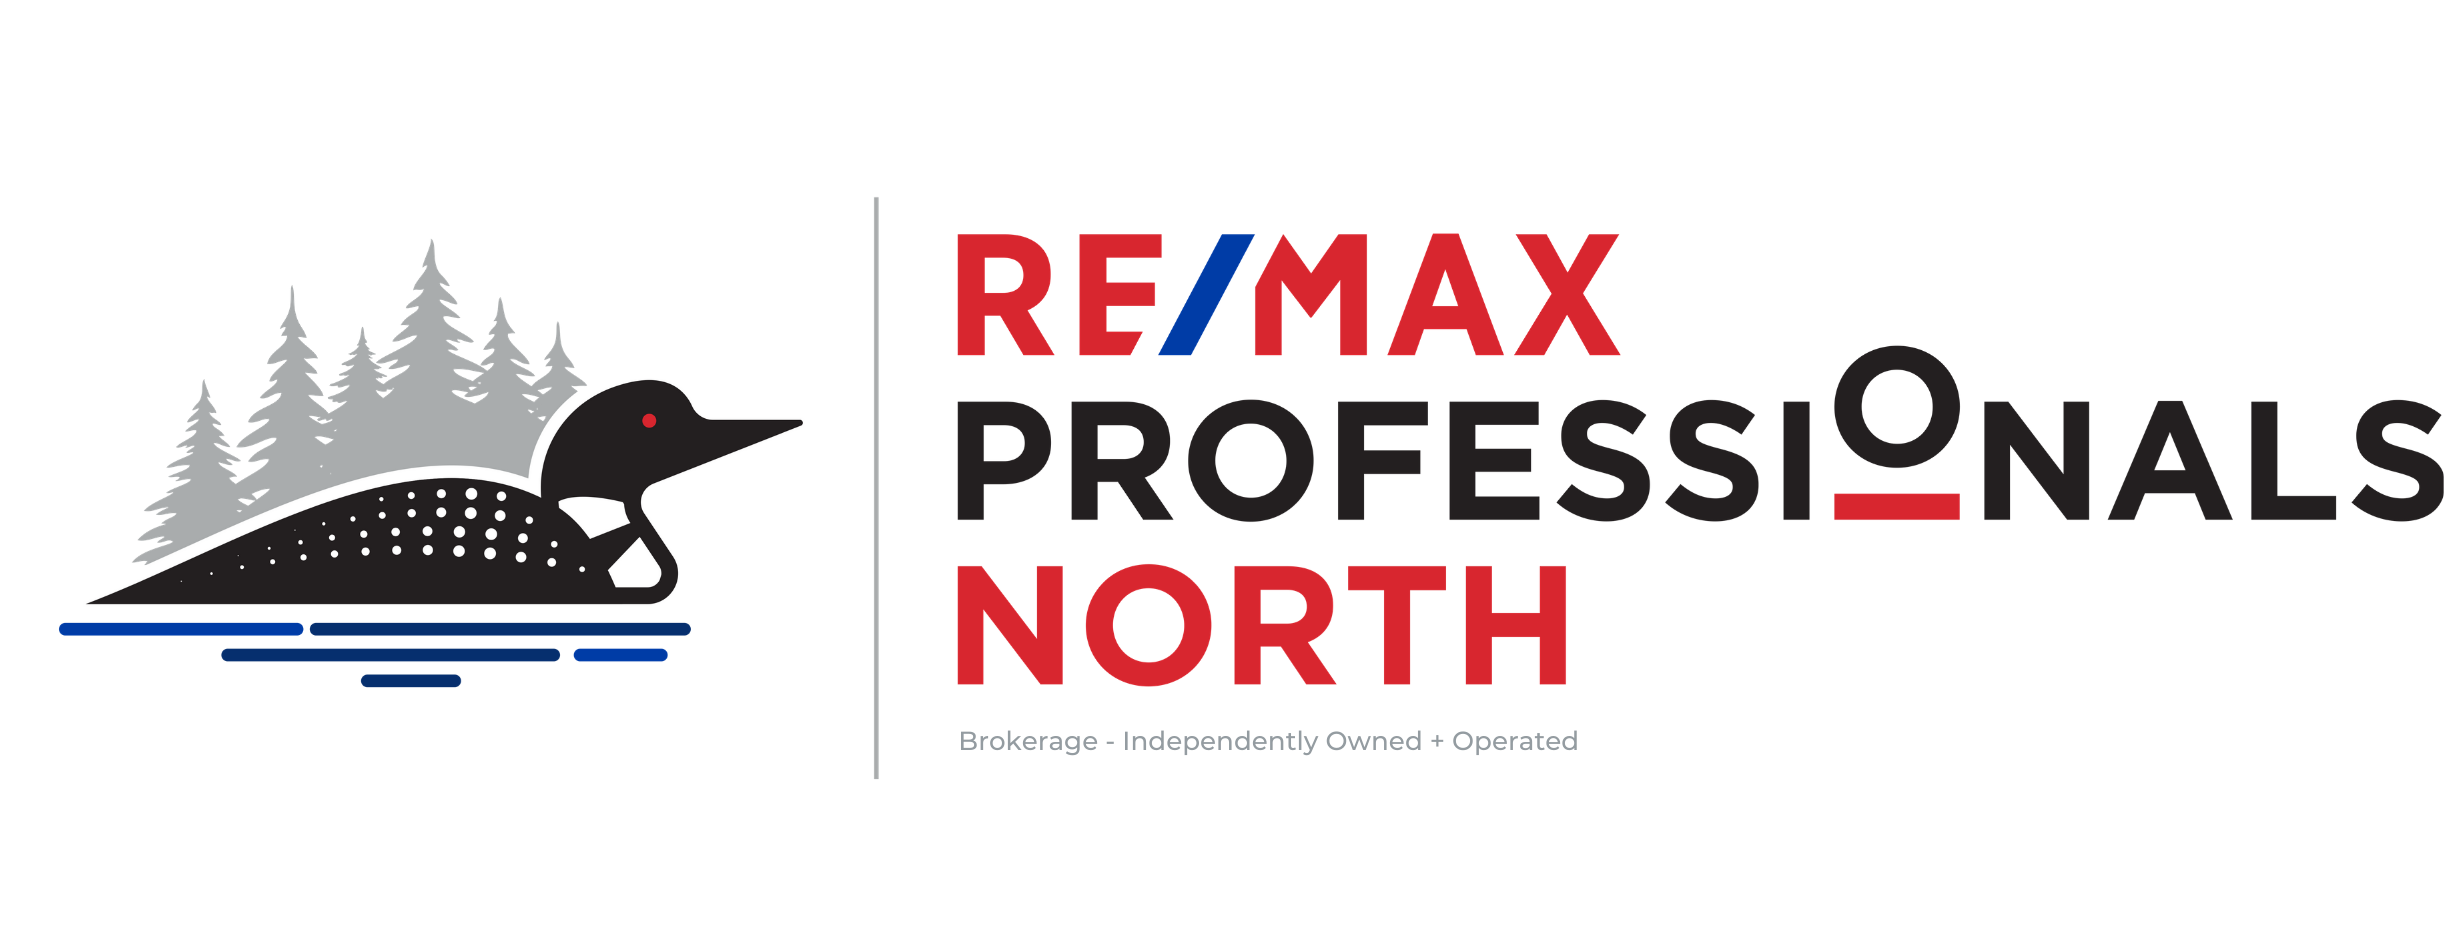 RE/MAX Professionals North logo